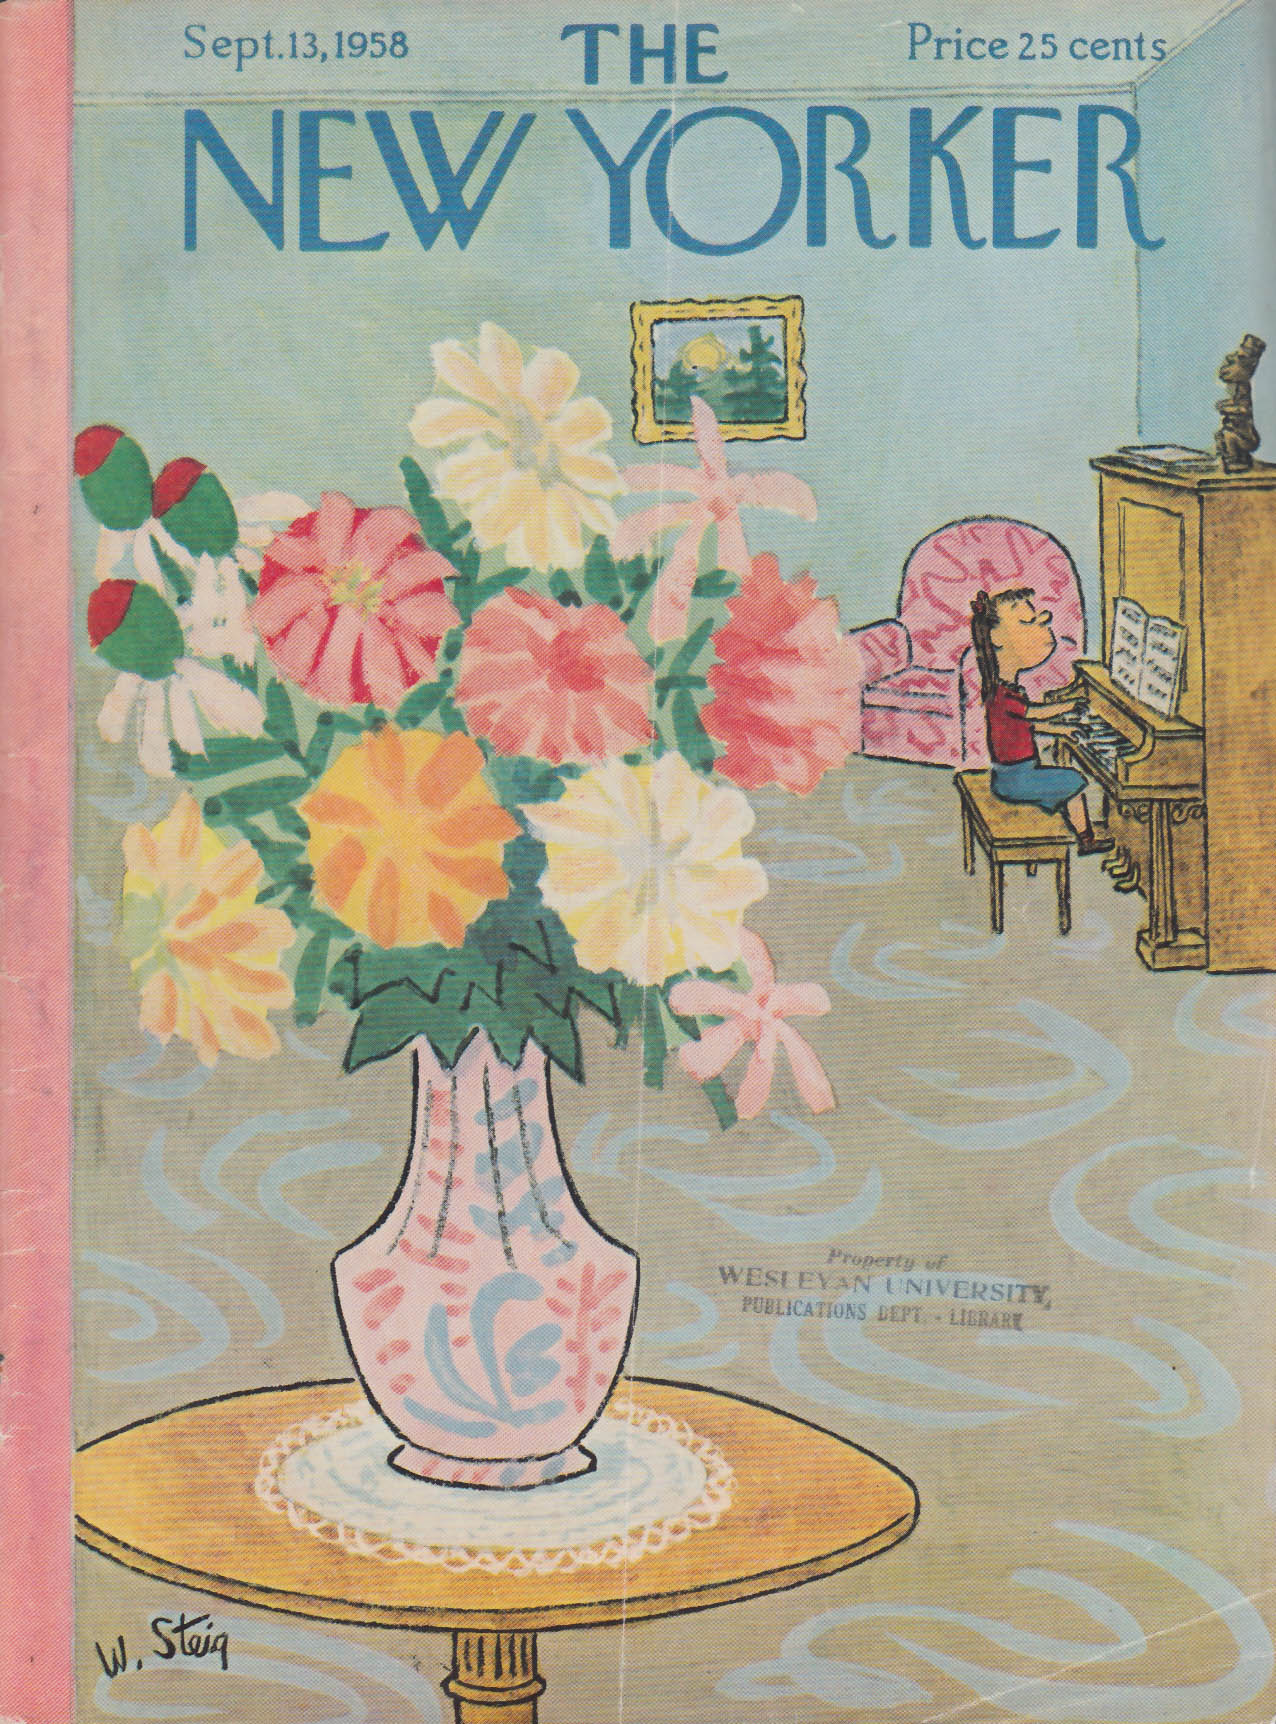 New Yorker cover Steig girl at piano bouquet 9/13 1958